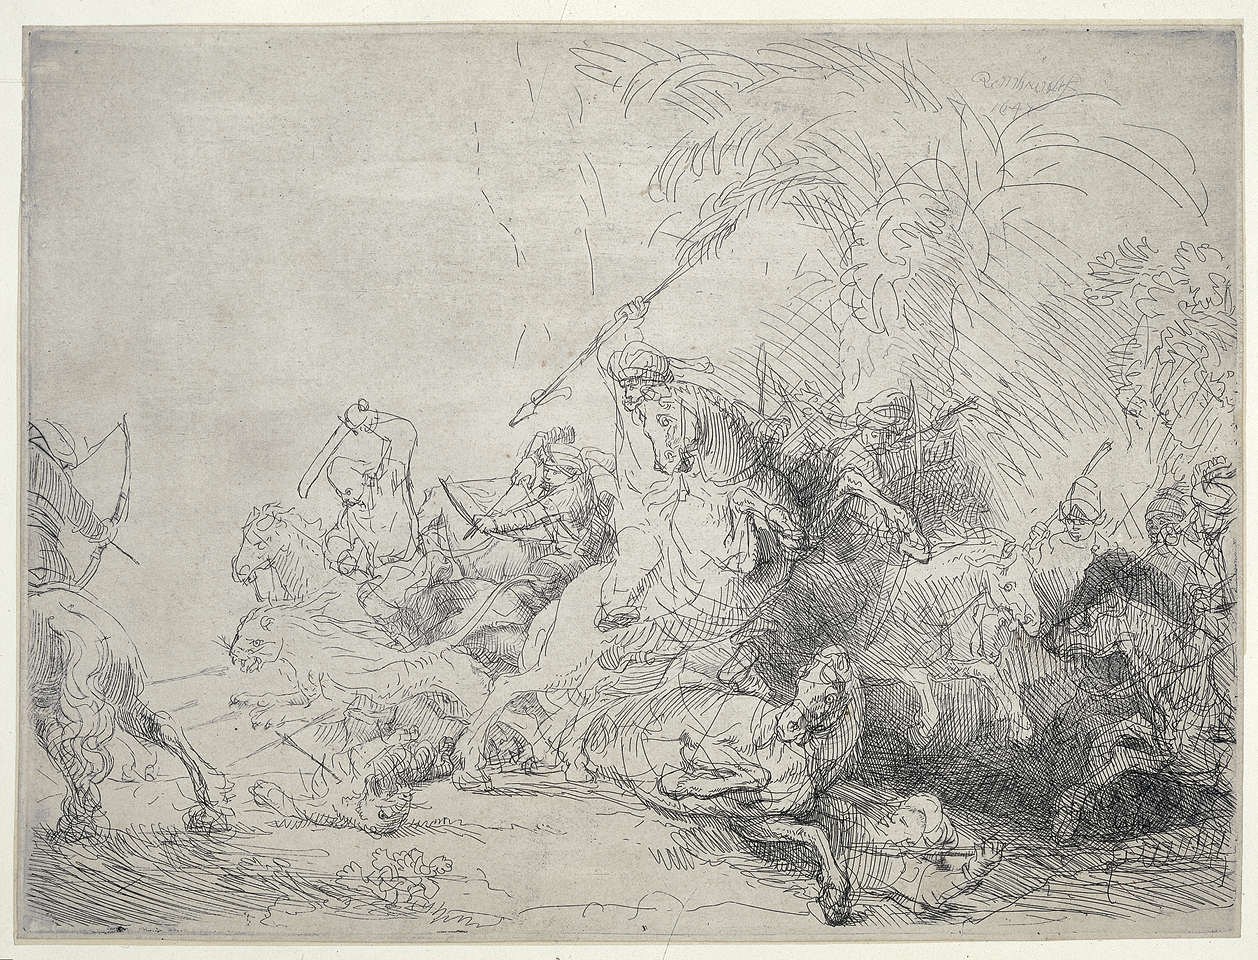 Rembrandt van Rijn - The large lion hunt 1641